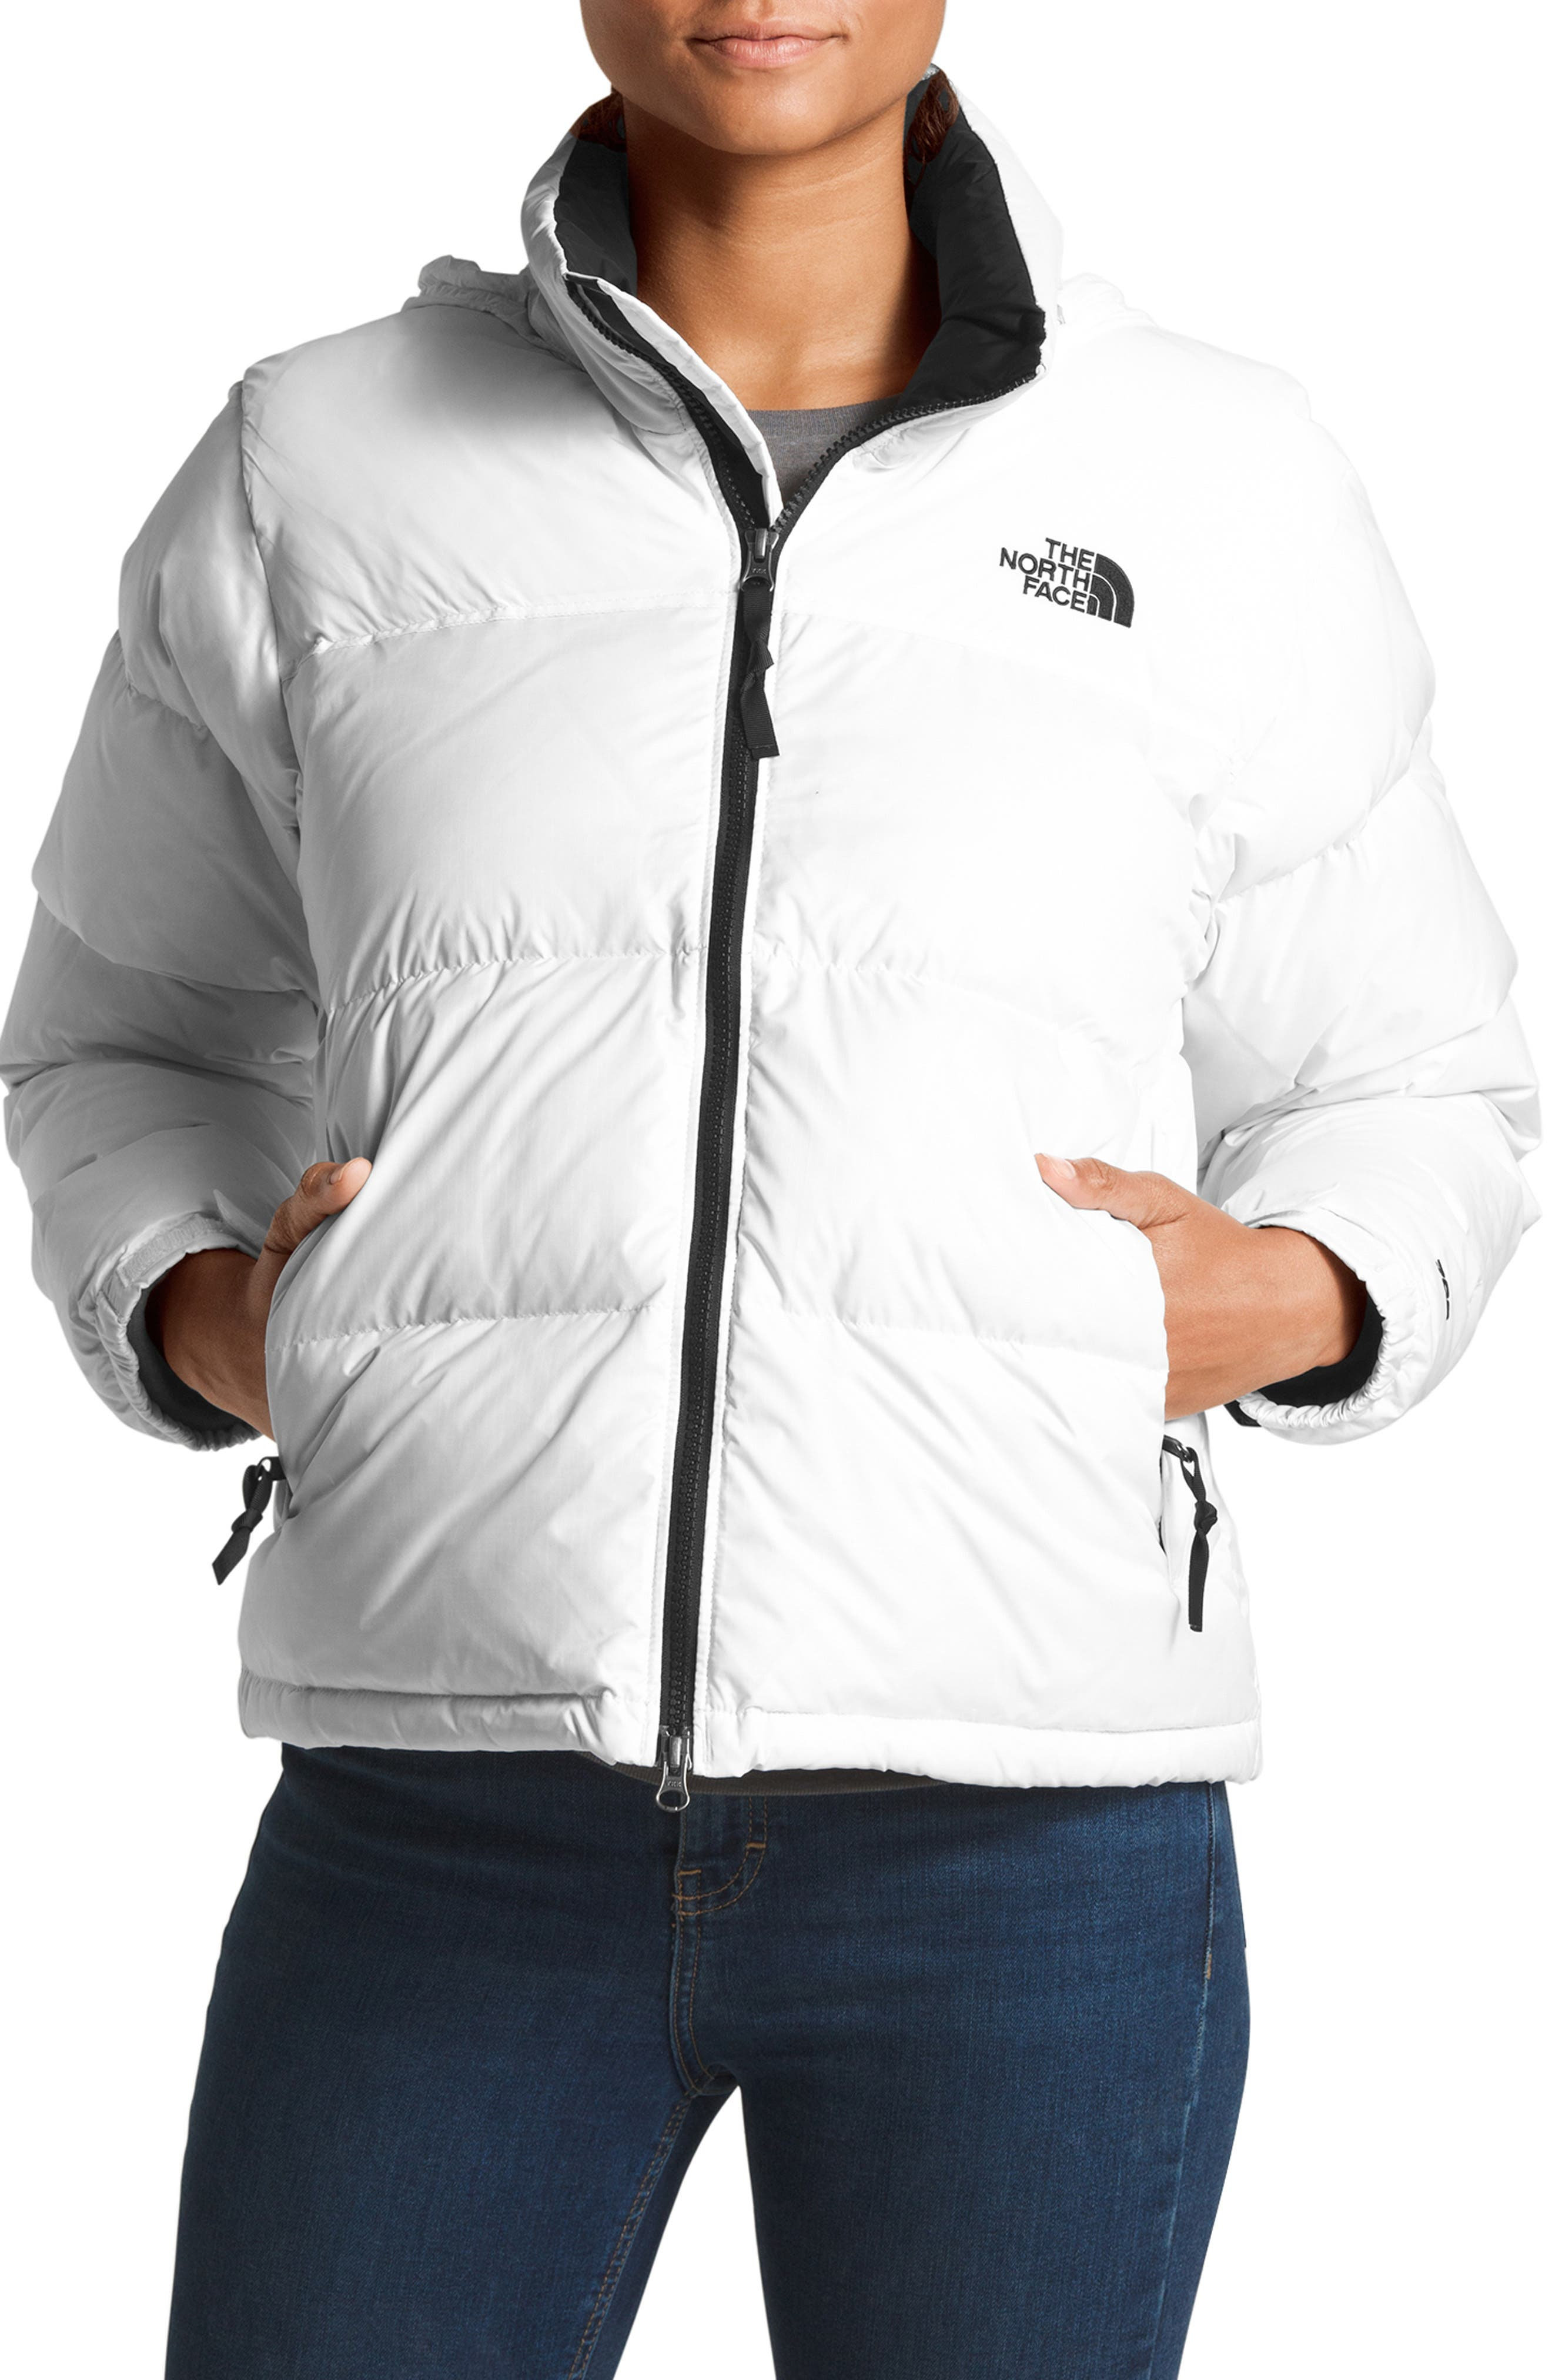 THE NORTH FACE, Nuptse 1996 Packable Quilted Down Jacket, Main thumbnail 1, color, TNF WHITE